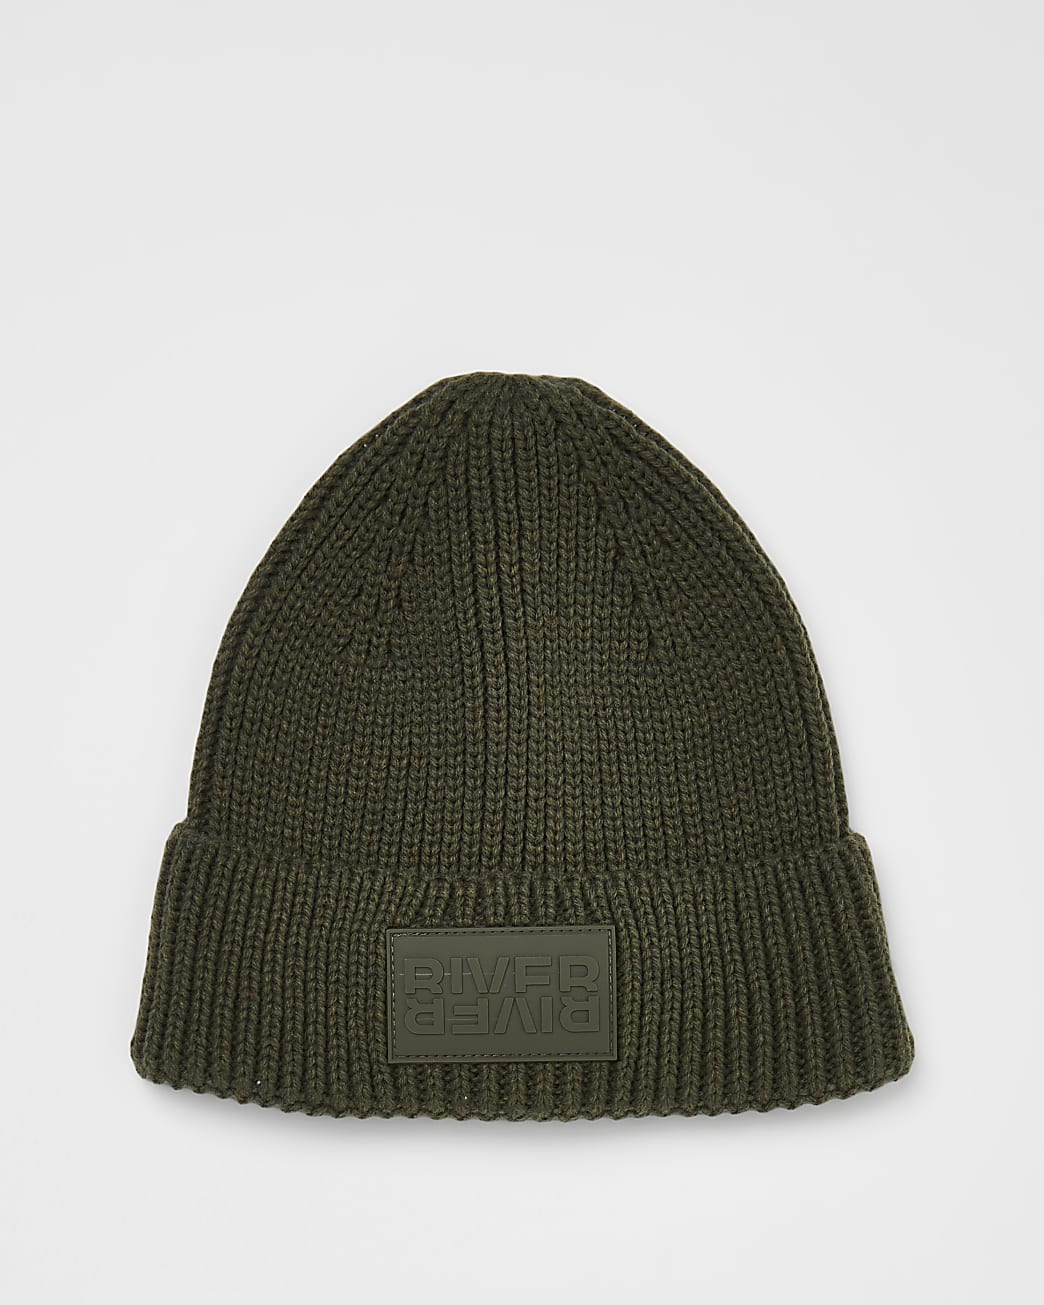 Khaki River branded rubber patch beanie hat